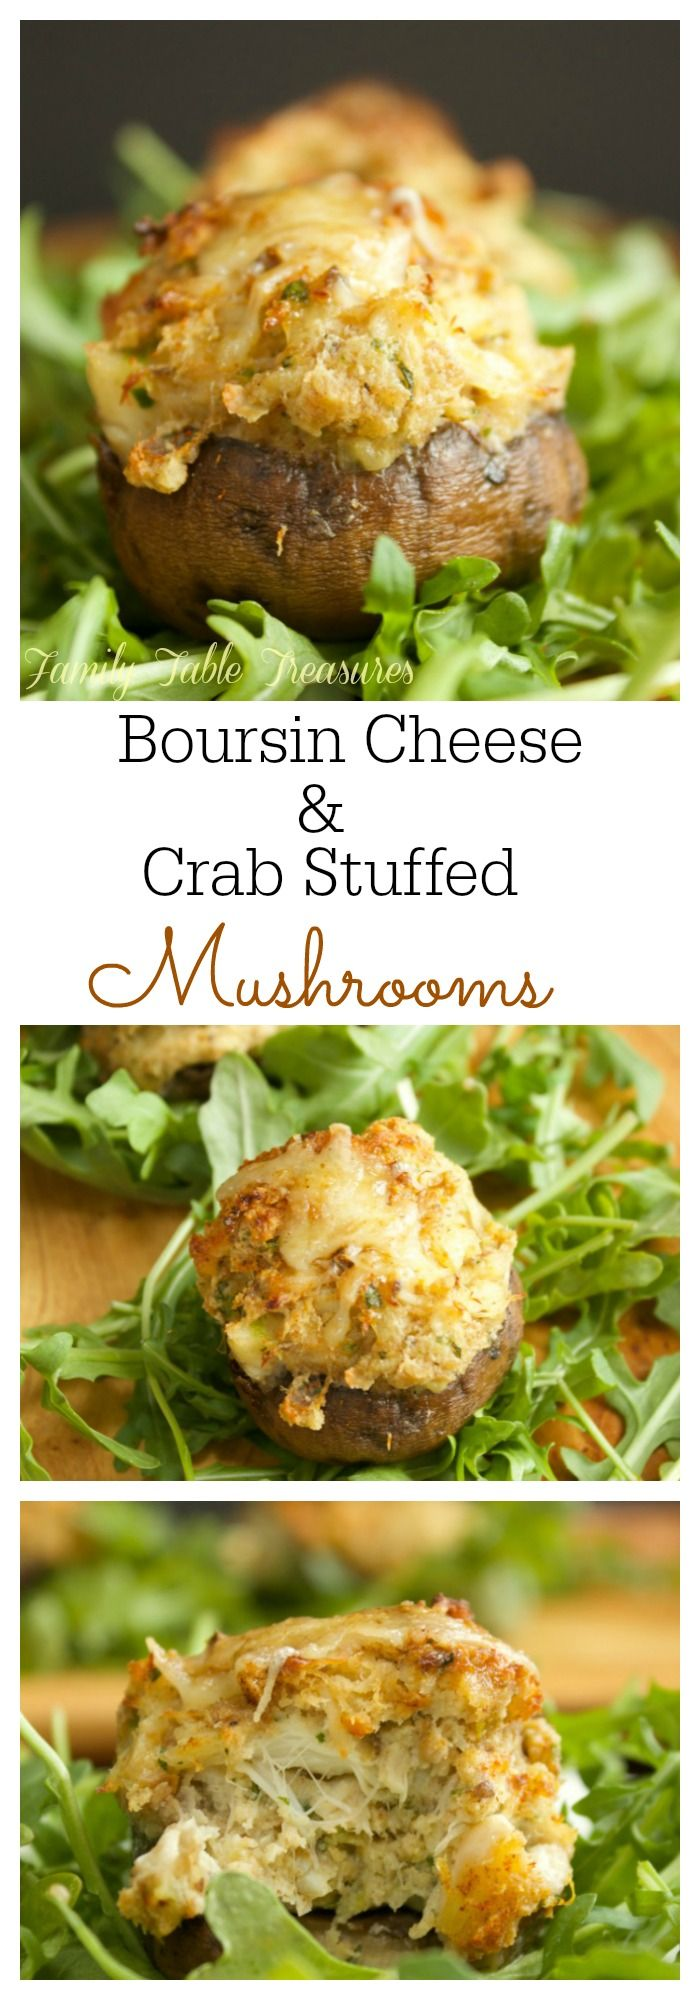 These Boursin Cheese & Crab Stuffed Mushrooms are melt in your mouth delicious. They're so hearty you could even serve them as a meal!I'm not usually a fan of stuffed mushrooms but Mom made these a couple weeks ago and I found myself going back for a second helping! I always taste everything that makes …